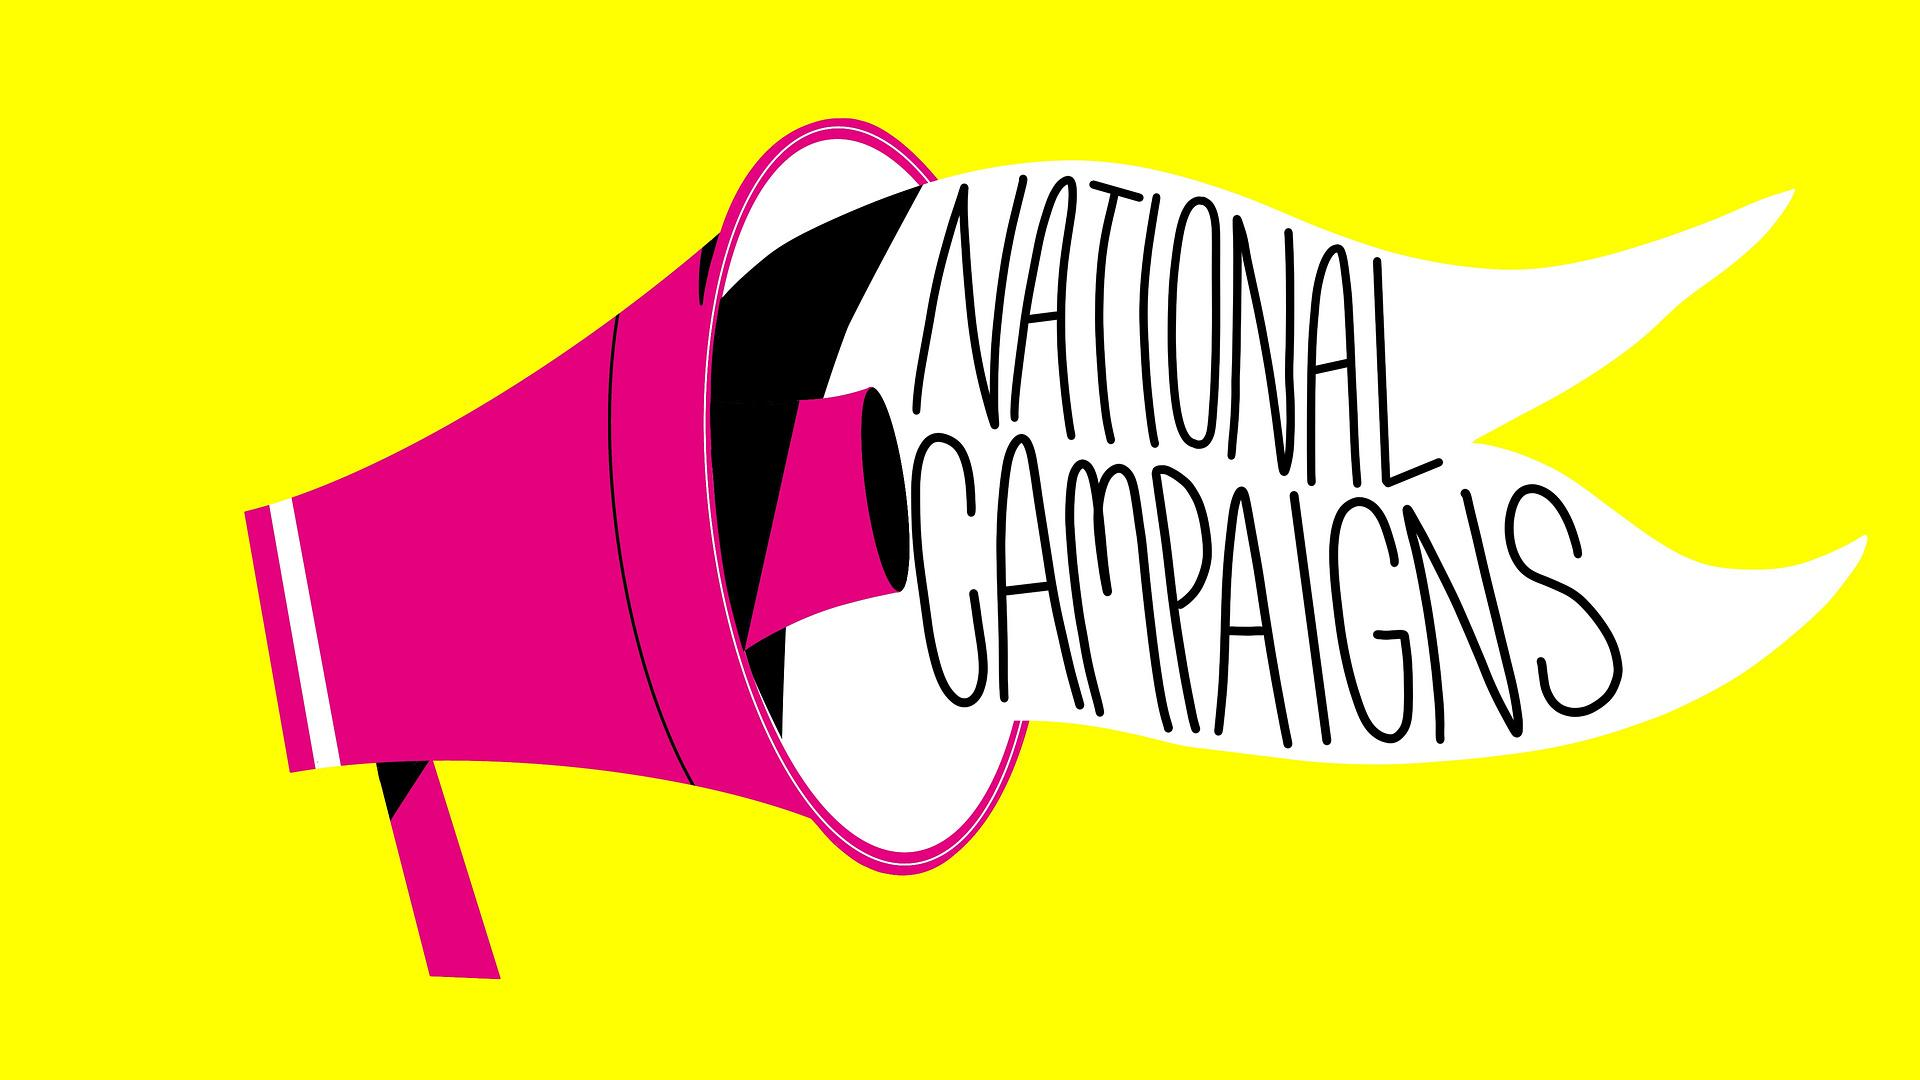 Brand Film promoting the use of National Campaigns